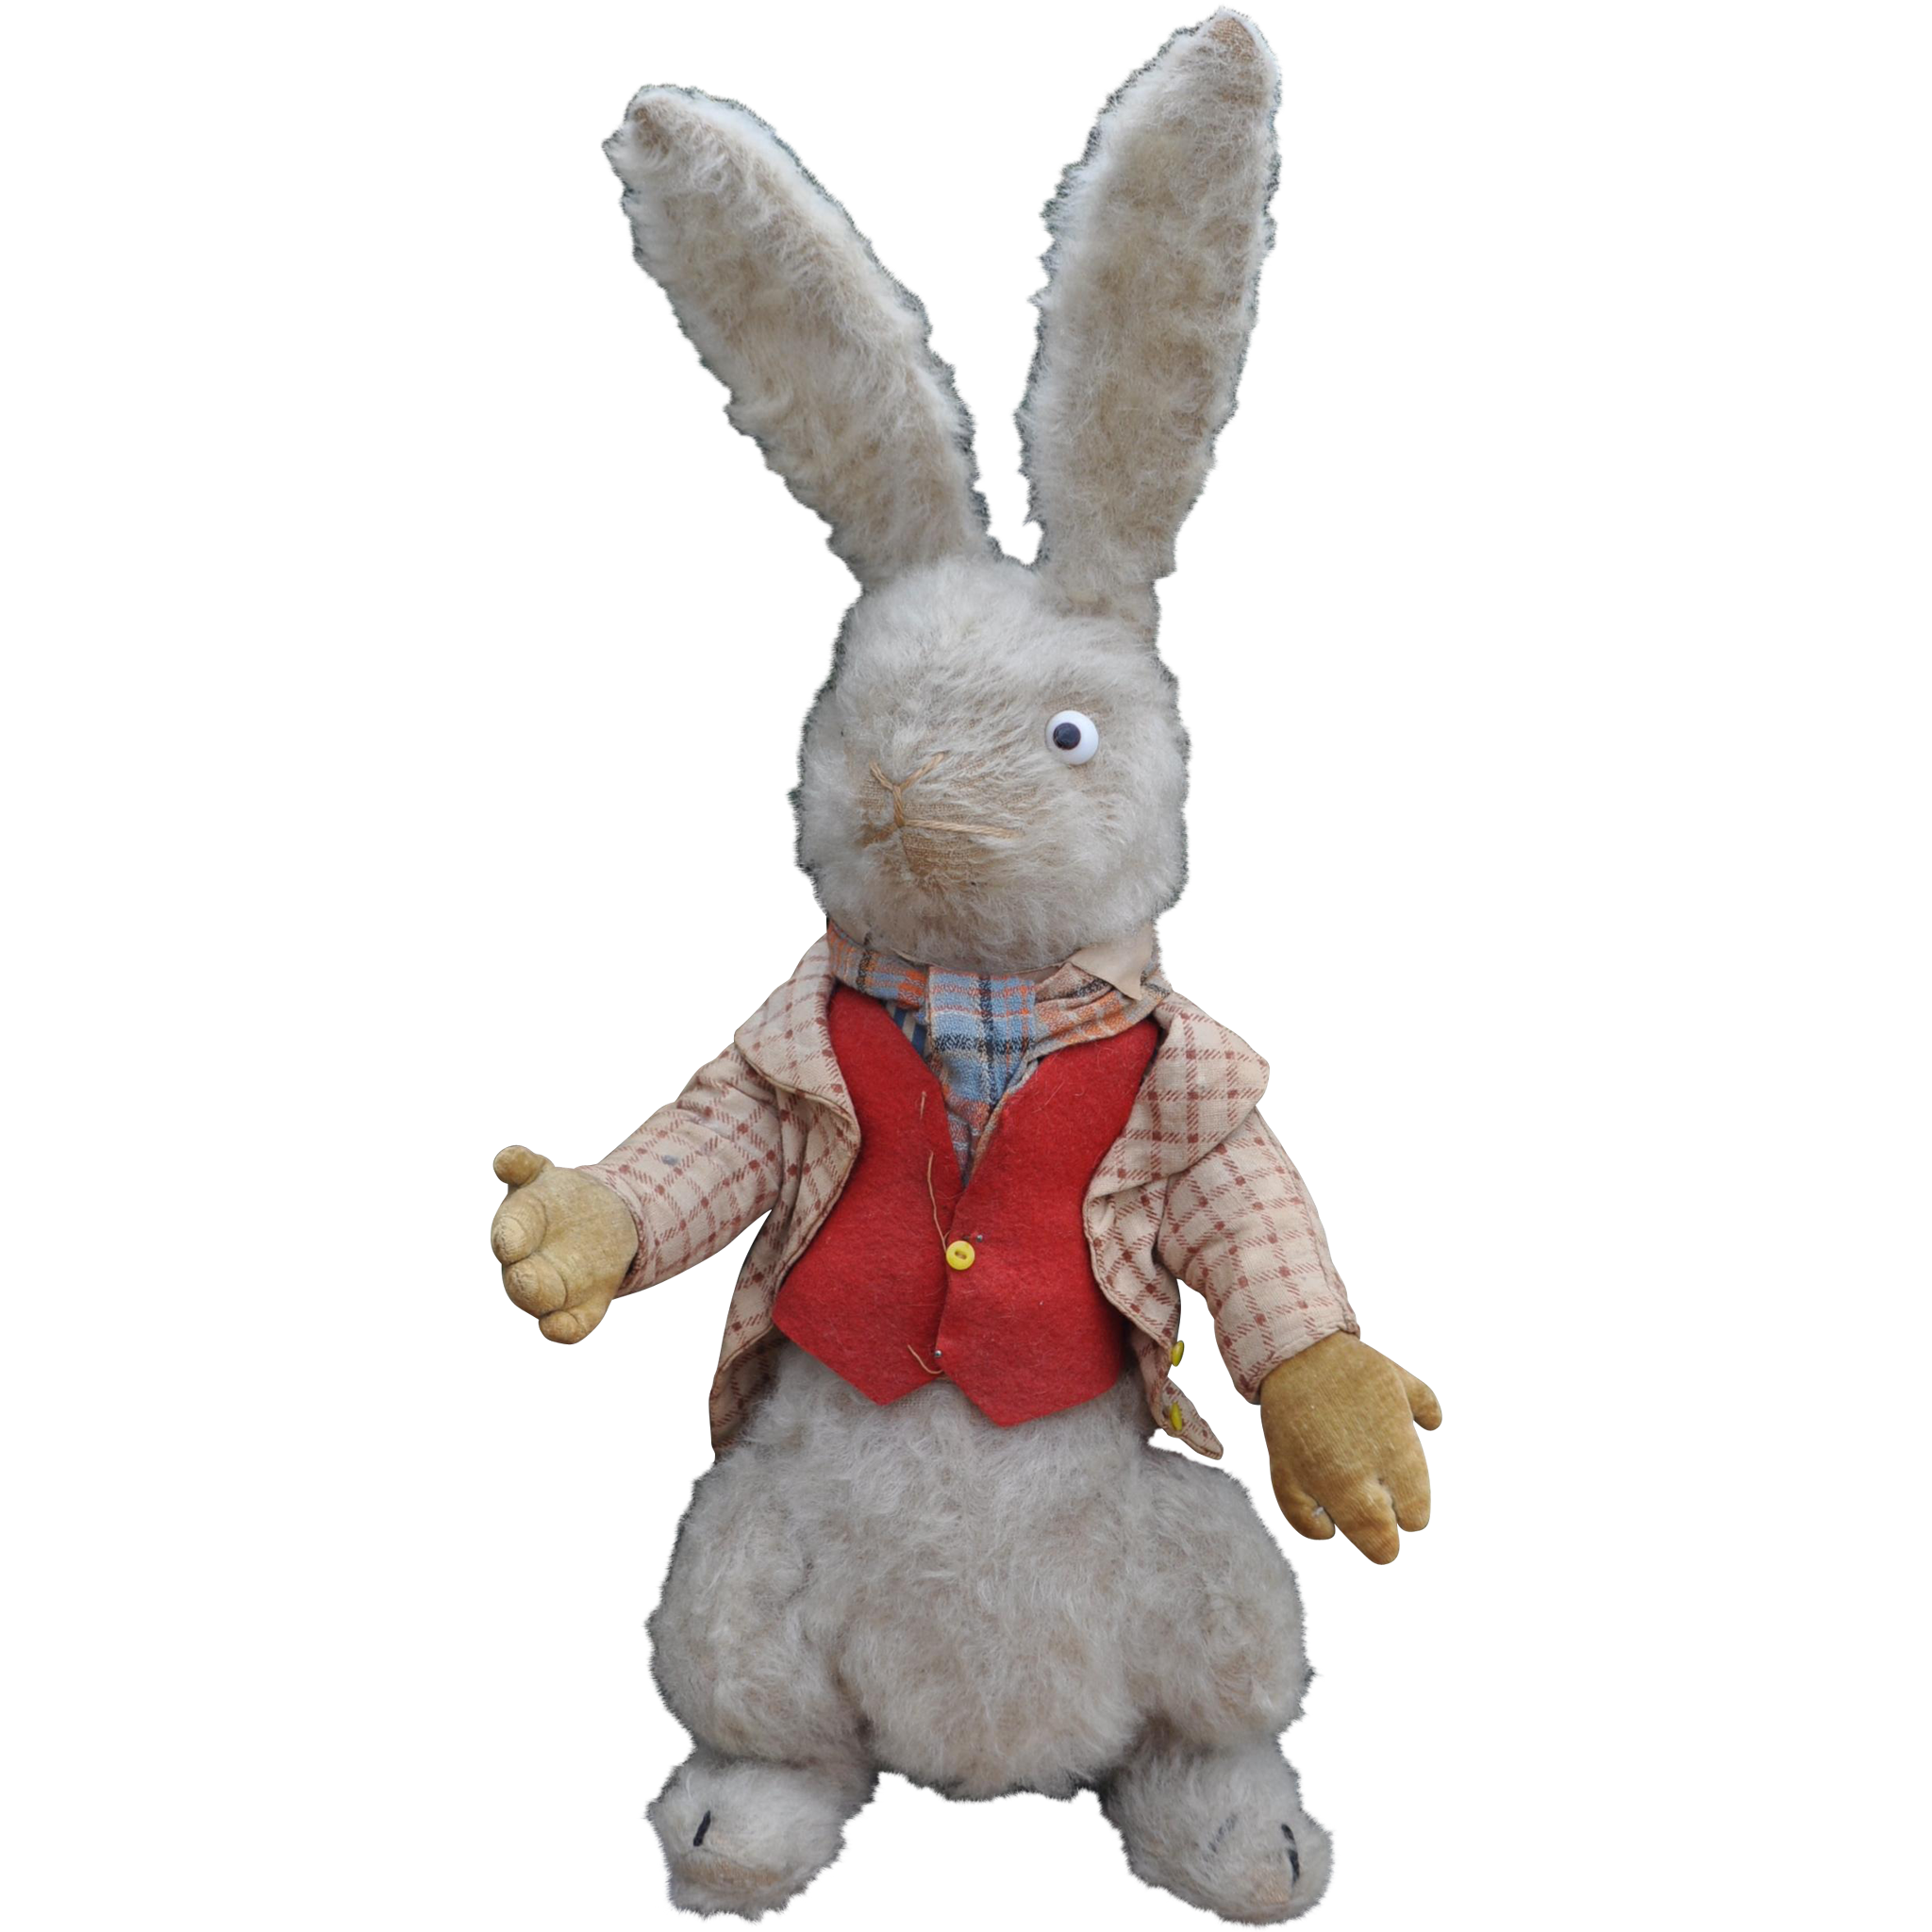 Toys Easter Magazine : A very rare dean s rag book co white rabbit from alice in